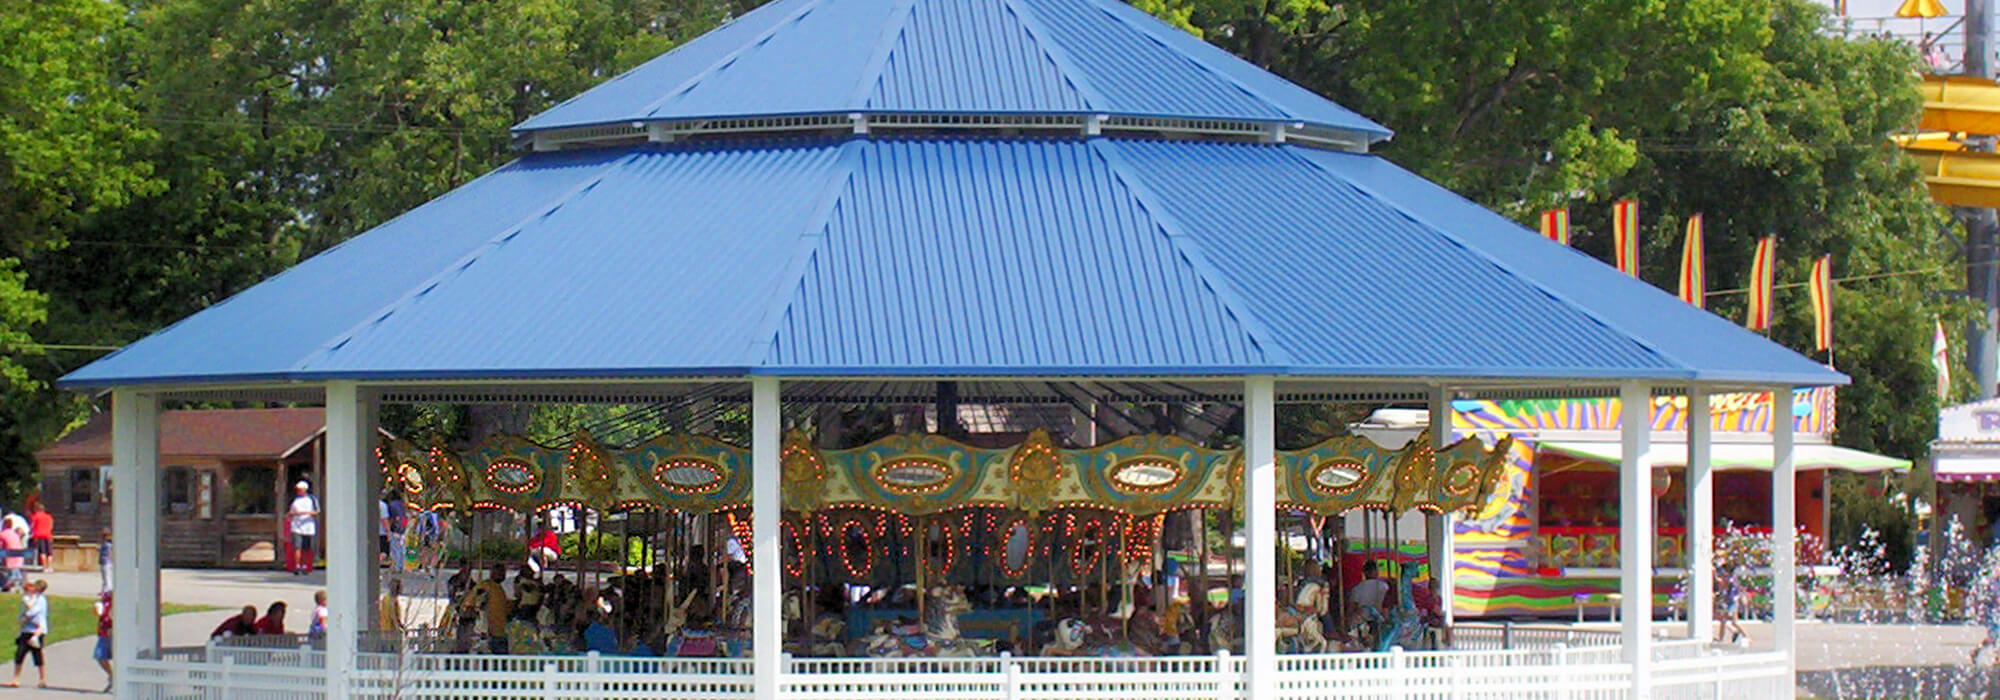 Grand Carousel | Beech Bend Amusement Park - Bowling Green, KY